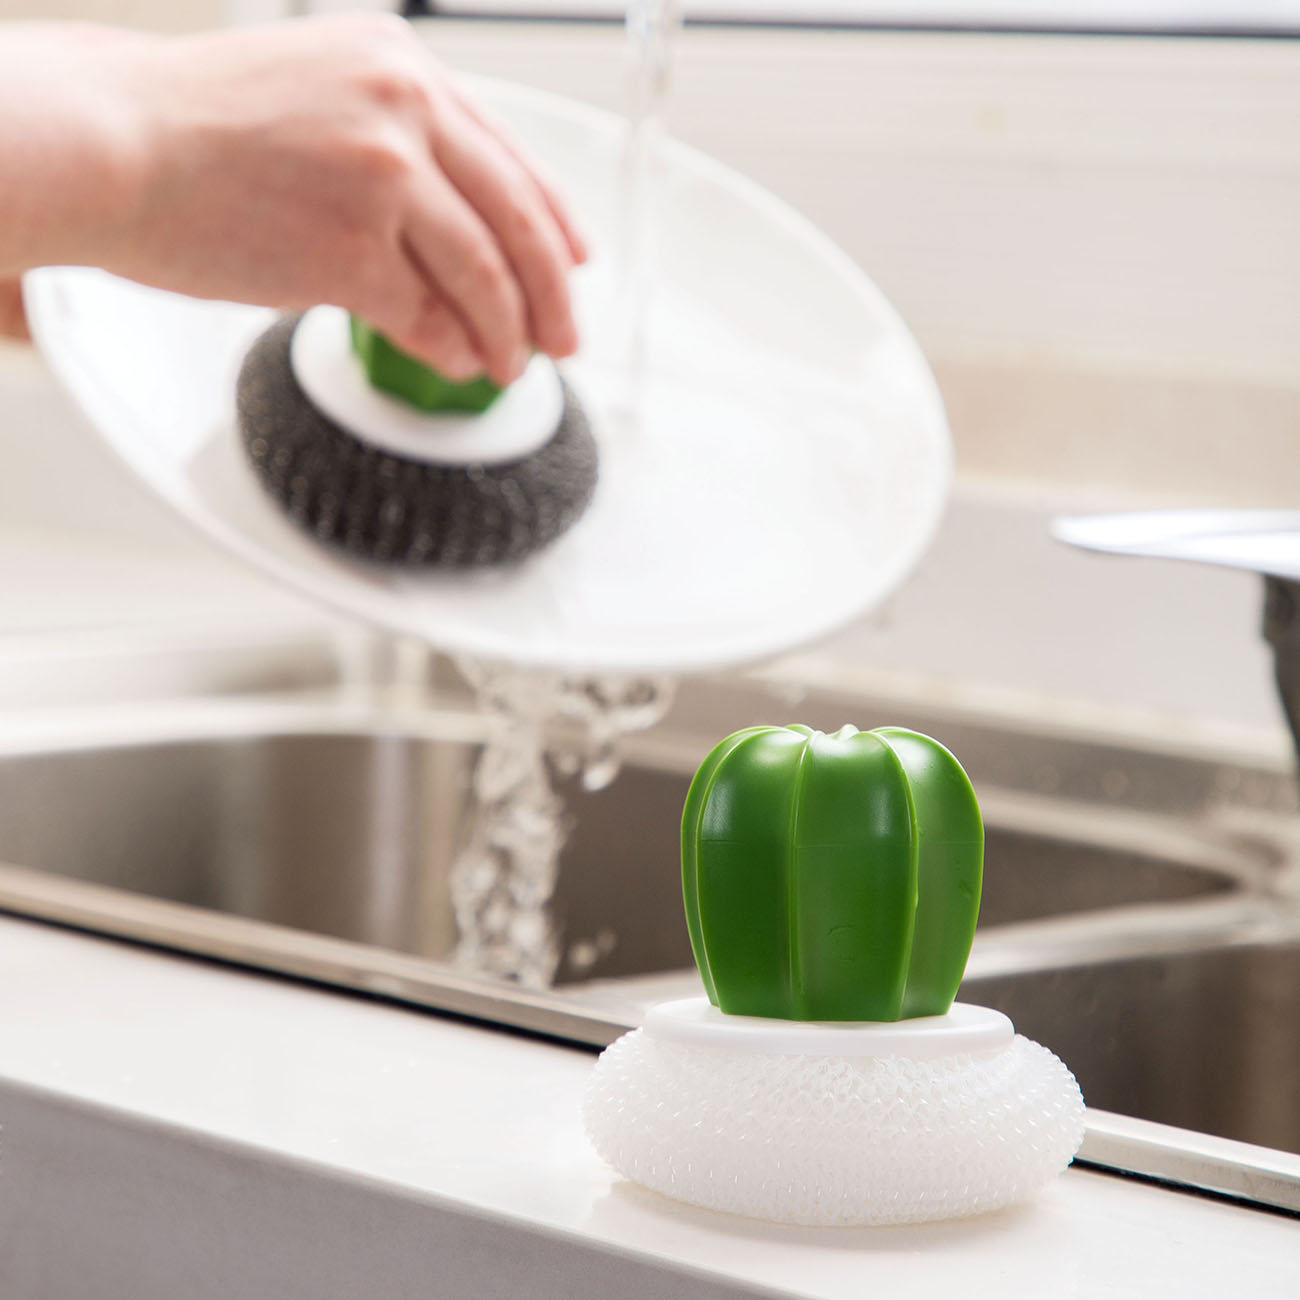 Cactus Shape Cleaning Brush Pot Pan Plate Washing Brushes Glass Dish Brush Scourer Steel Wool Kitchen Cleaning Tool